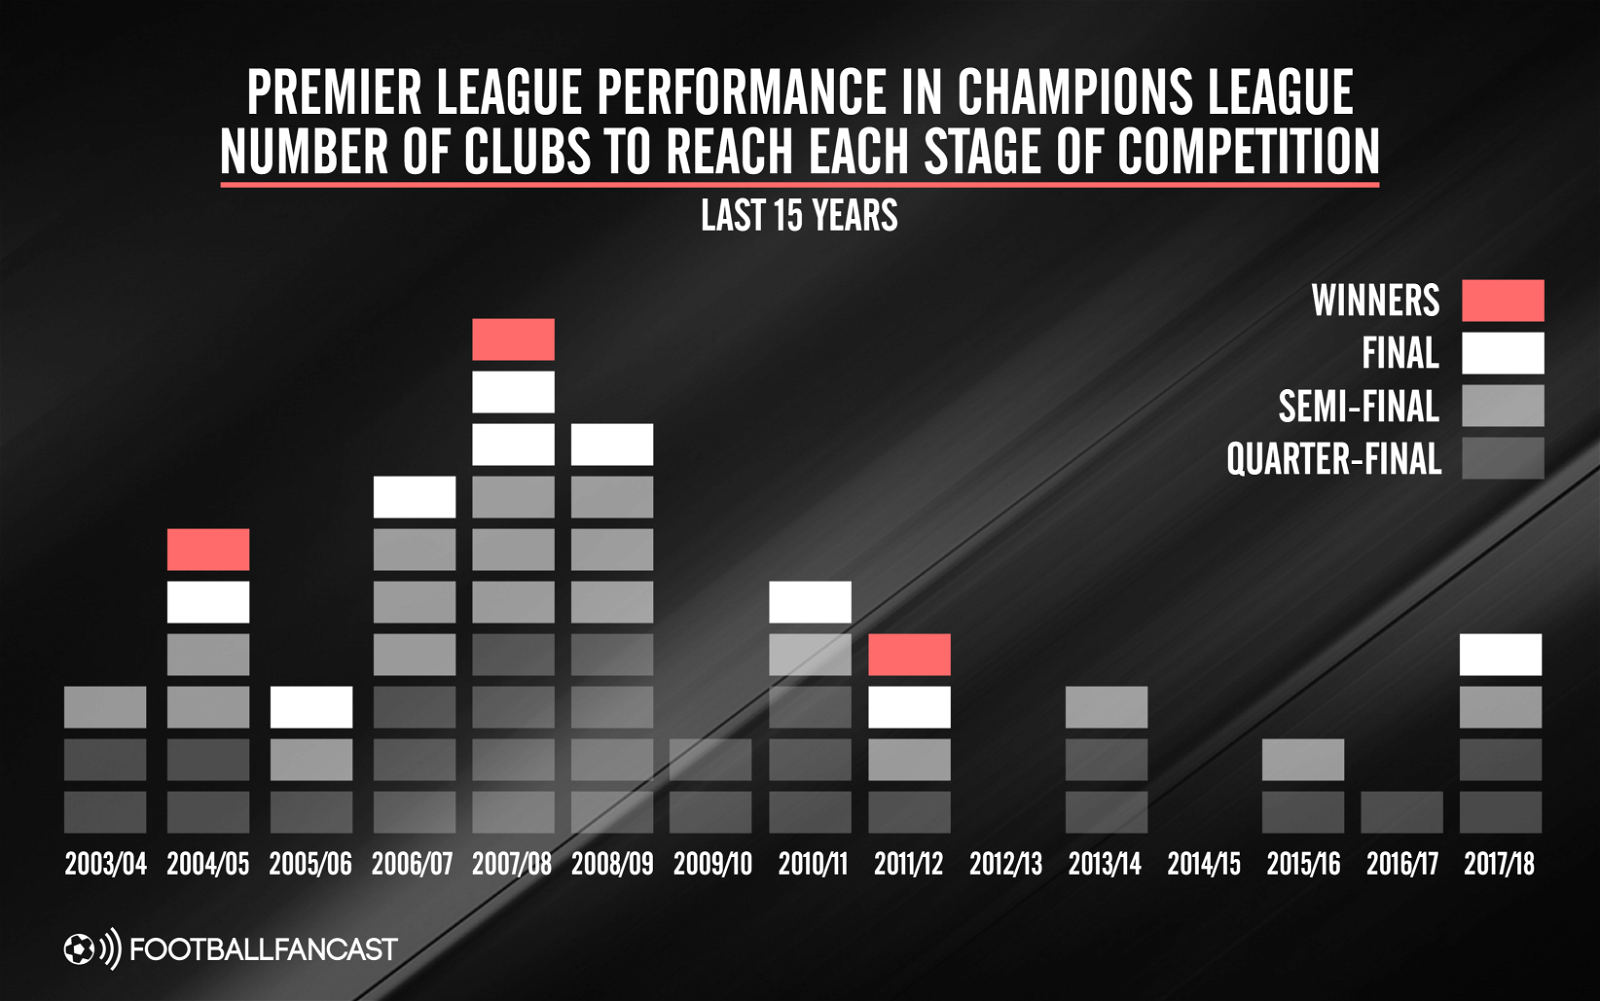 Premier League performance in the Champions League over the last 15 seasons